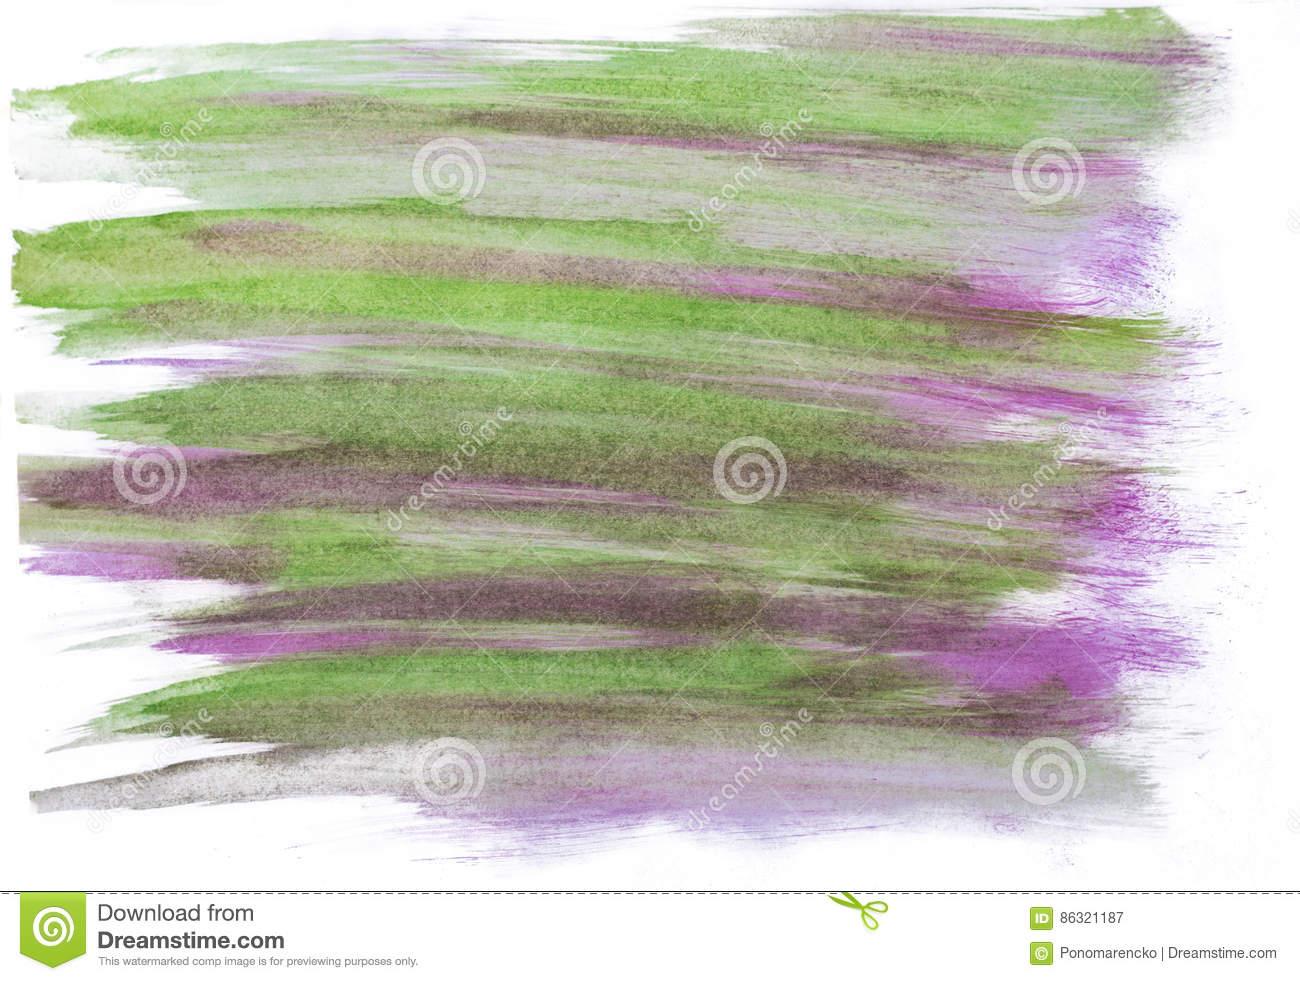 Handmade green and purple watercolor abstract